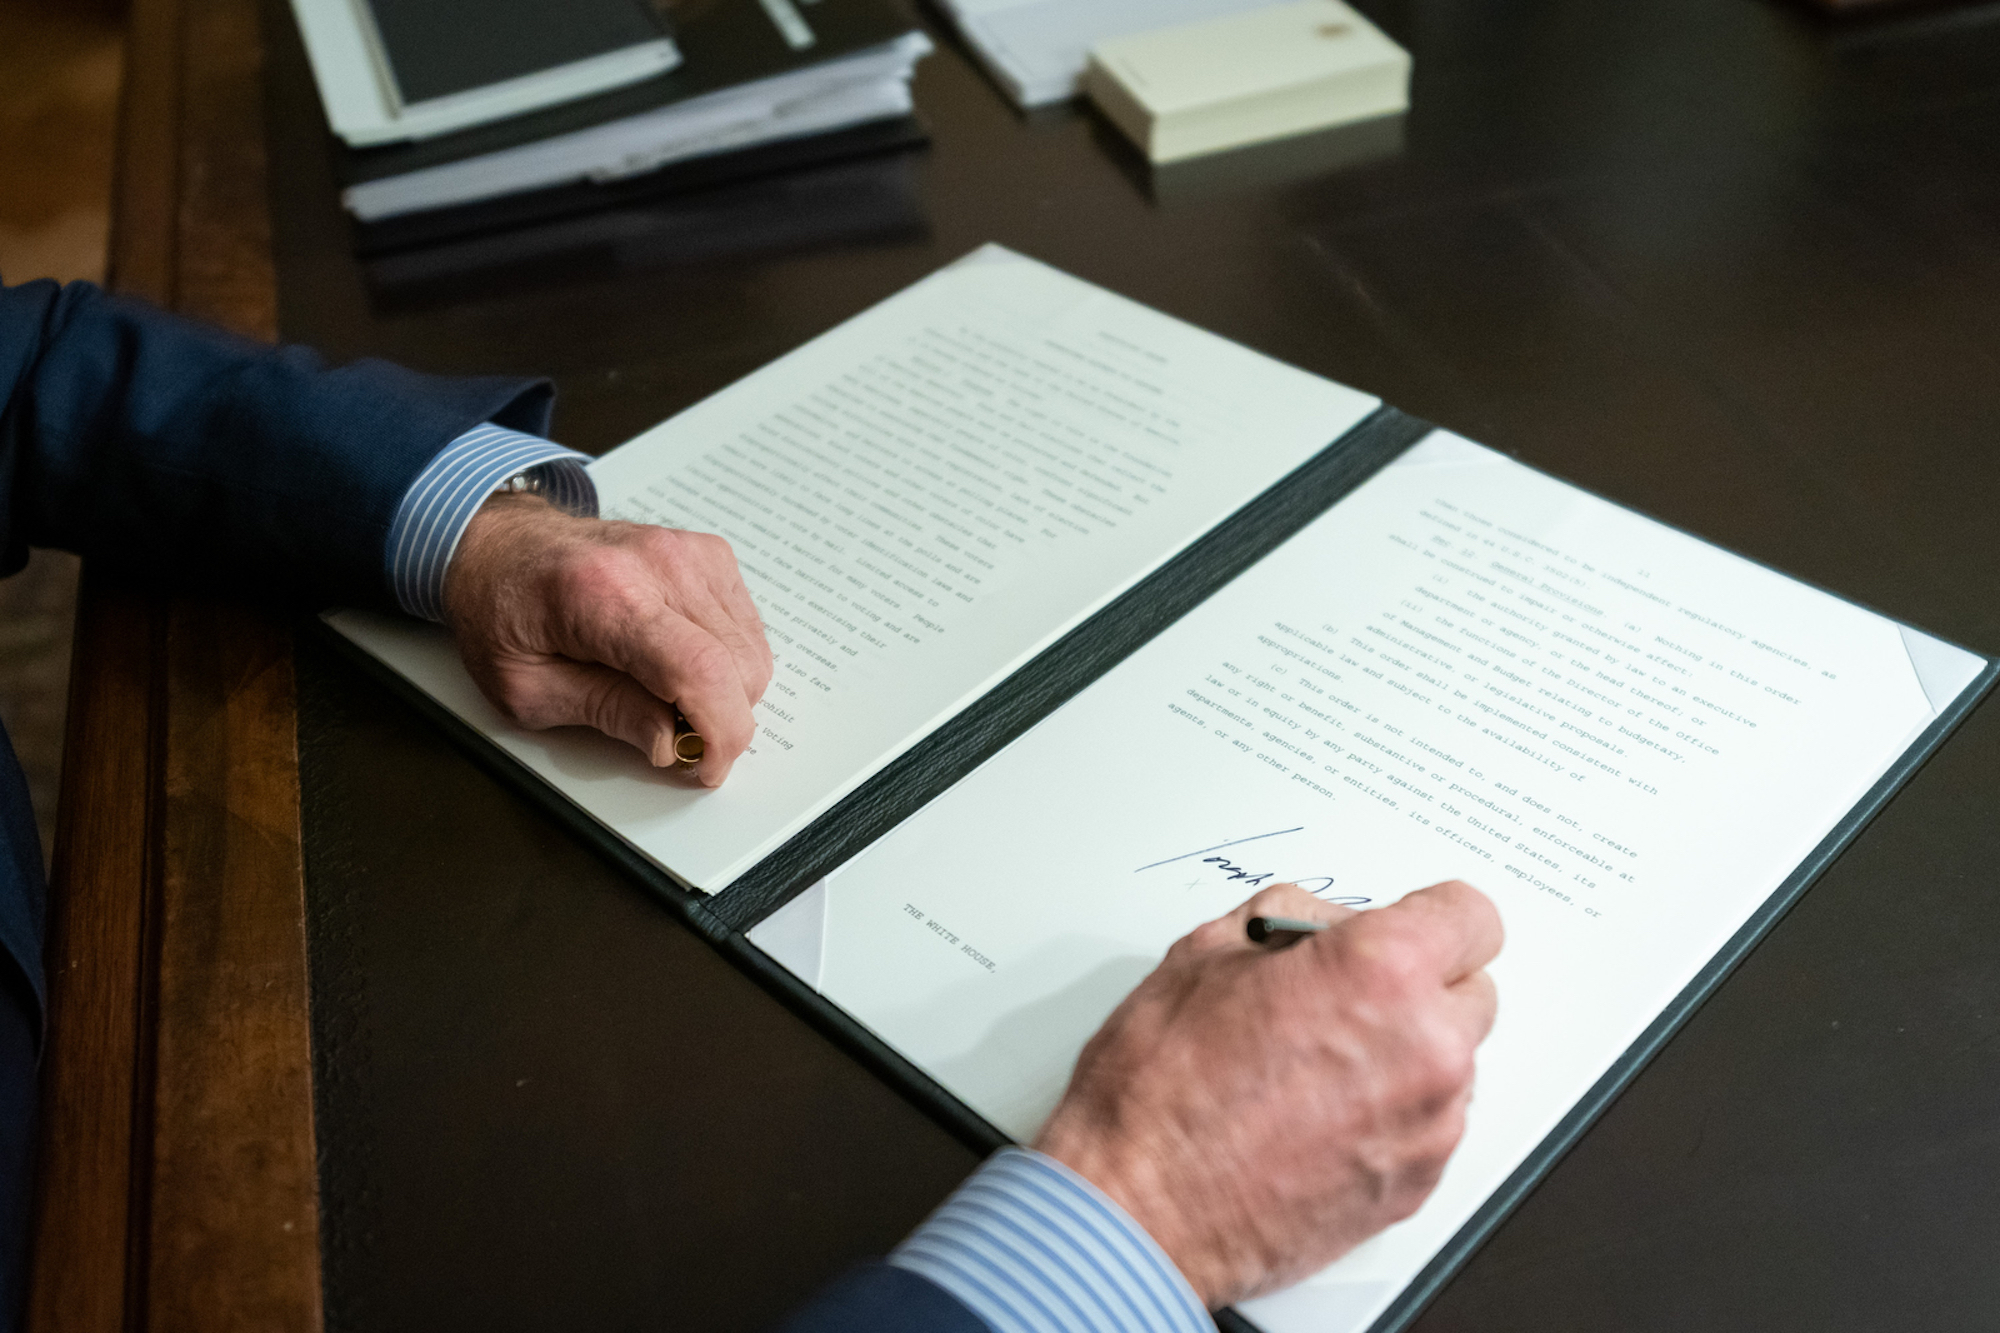 Image shows president Biden's hands as he signs an executive order promoting voting access